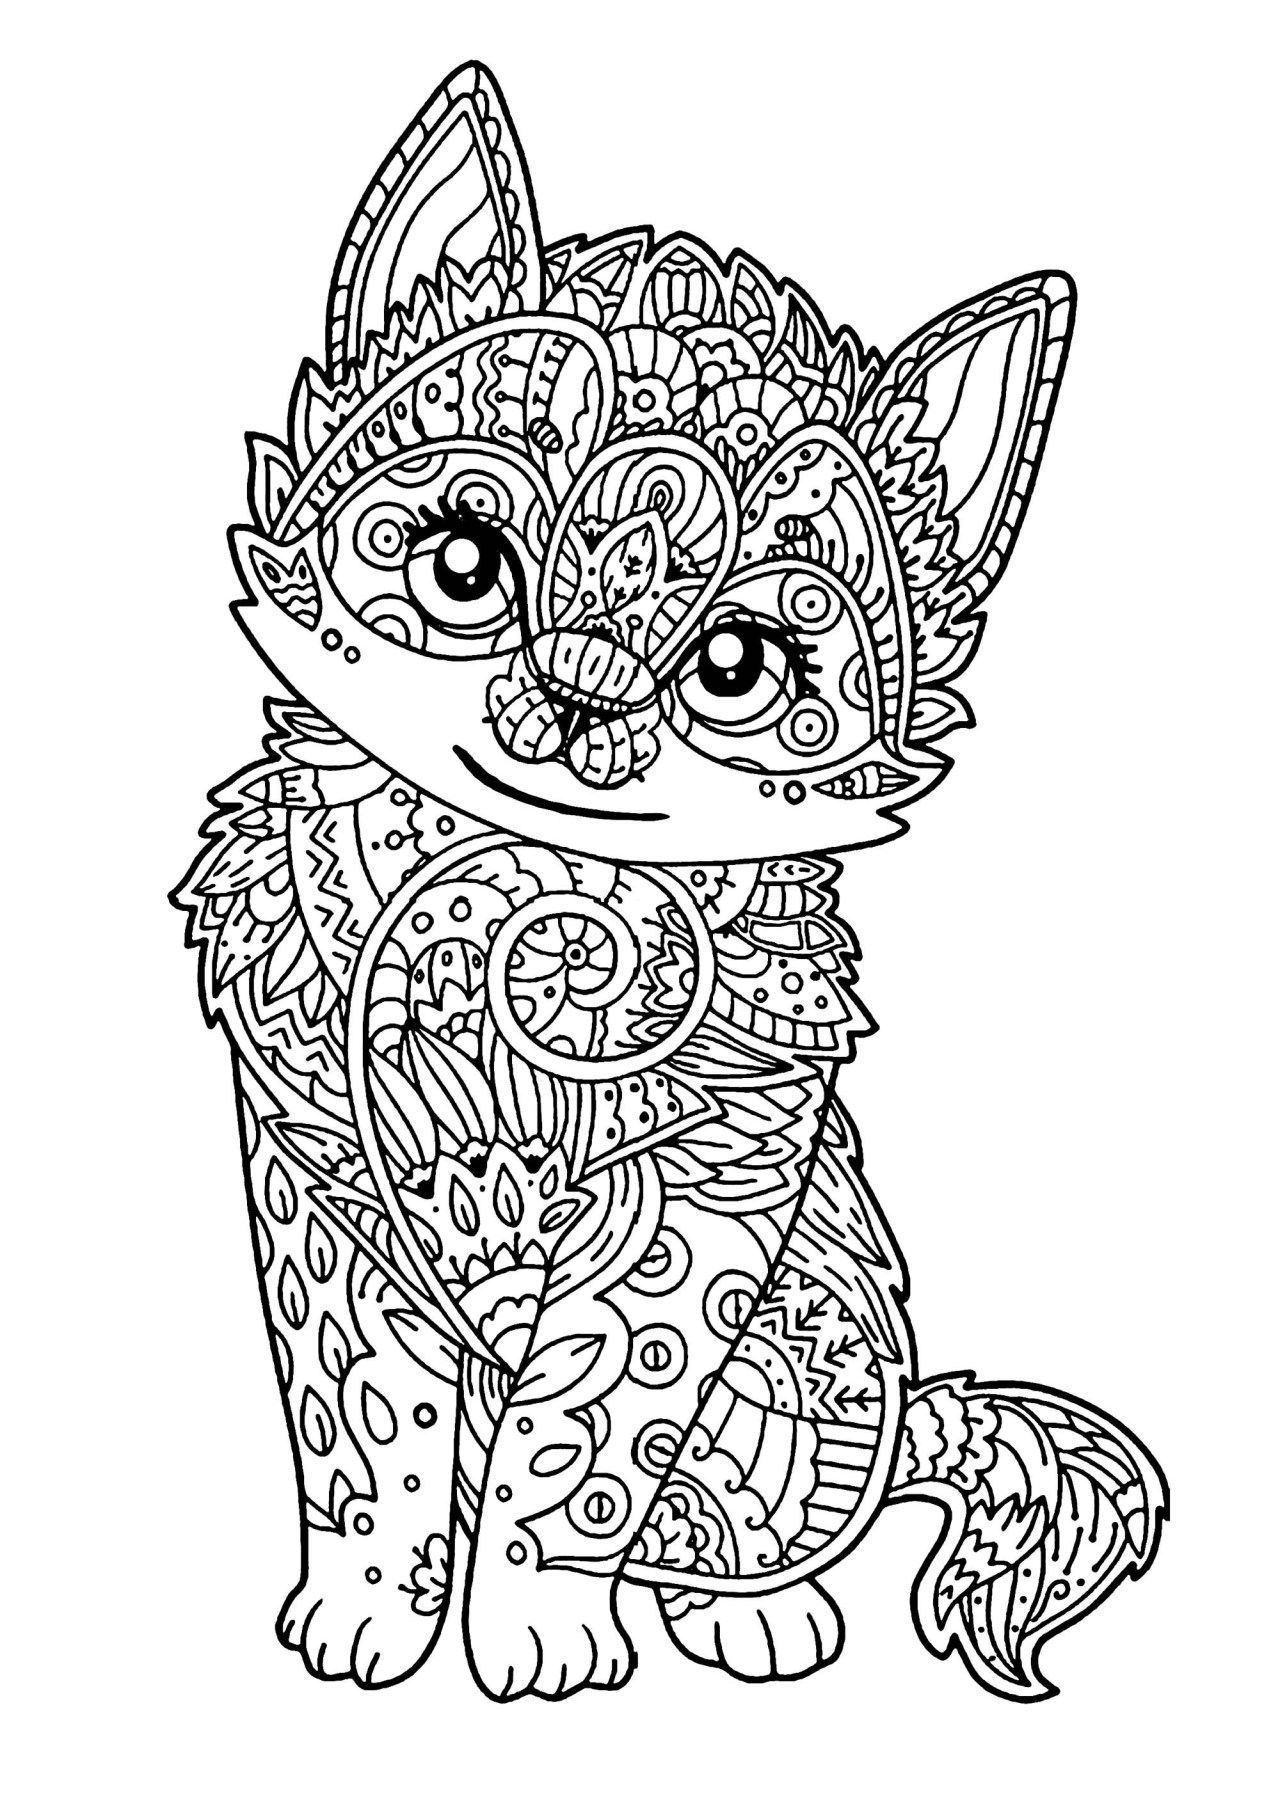 Coloring Pages Of Cats Coloring Pages Cats Cat Color Printable Kitten 10001321 Attachment Entitlementtrap Com Cat Coloring Book Cat Coloring Page Dog Coloring Page